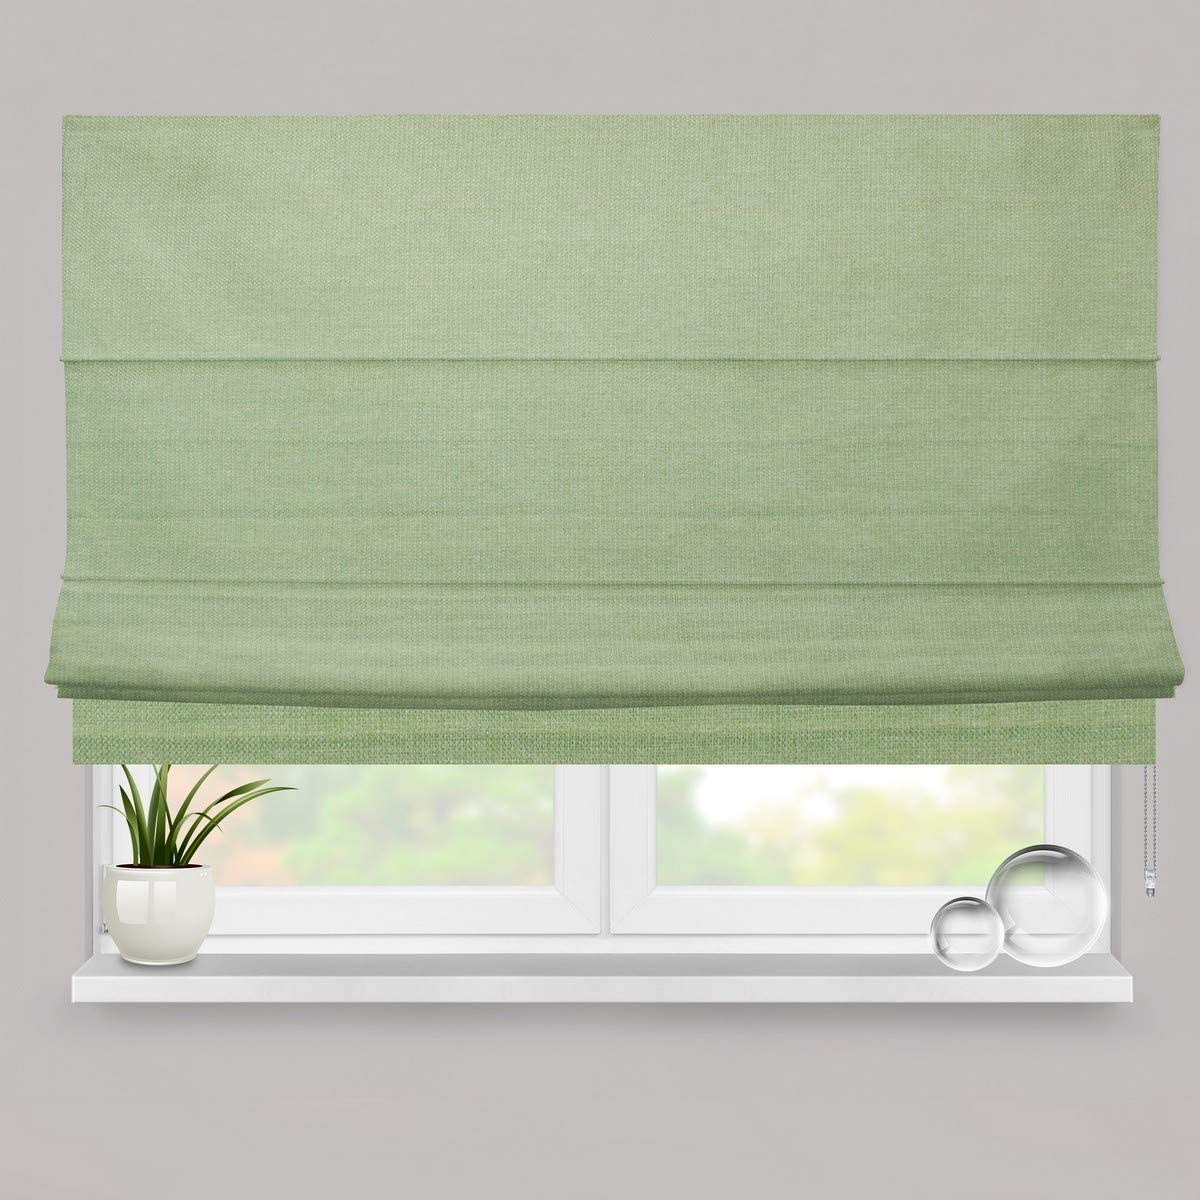 2ft Deluxe Cassette and Alteration upgrade available Barnes Textiles Green Weave Fully Lined Roman Blind 61cm